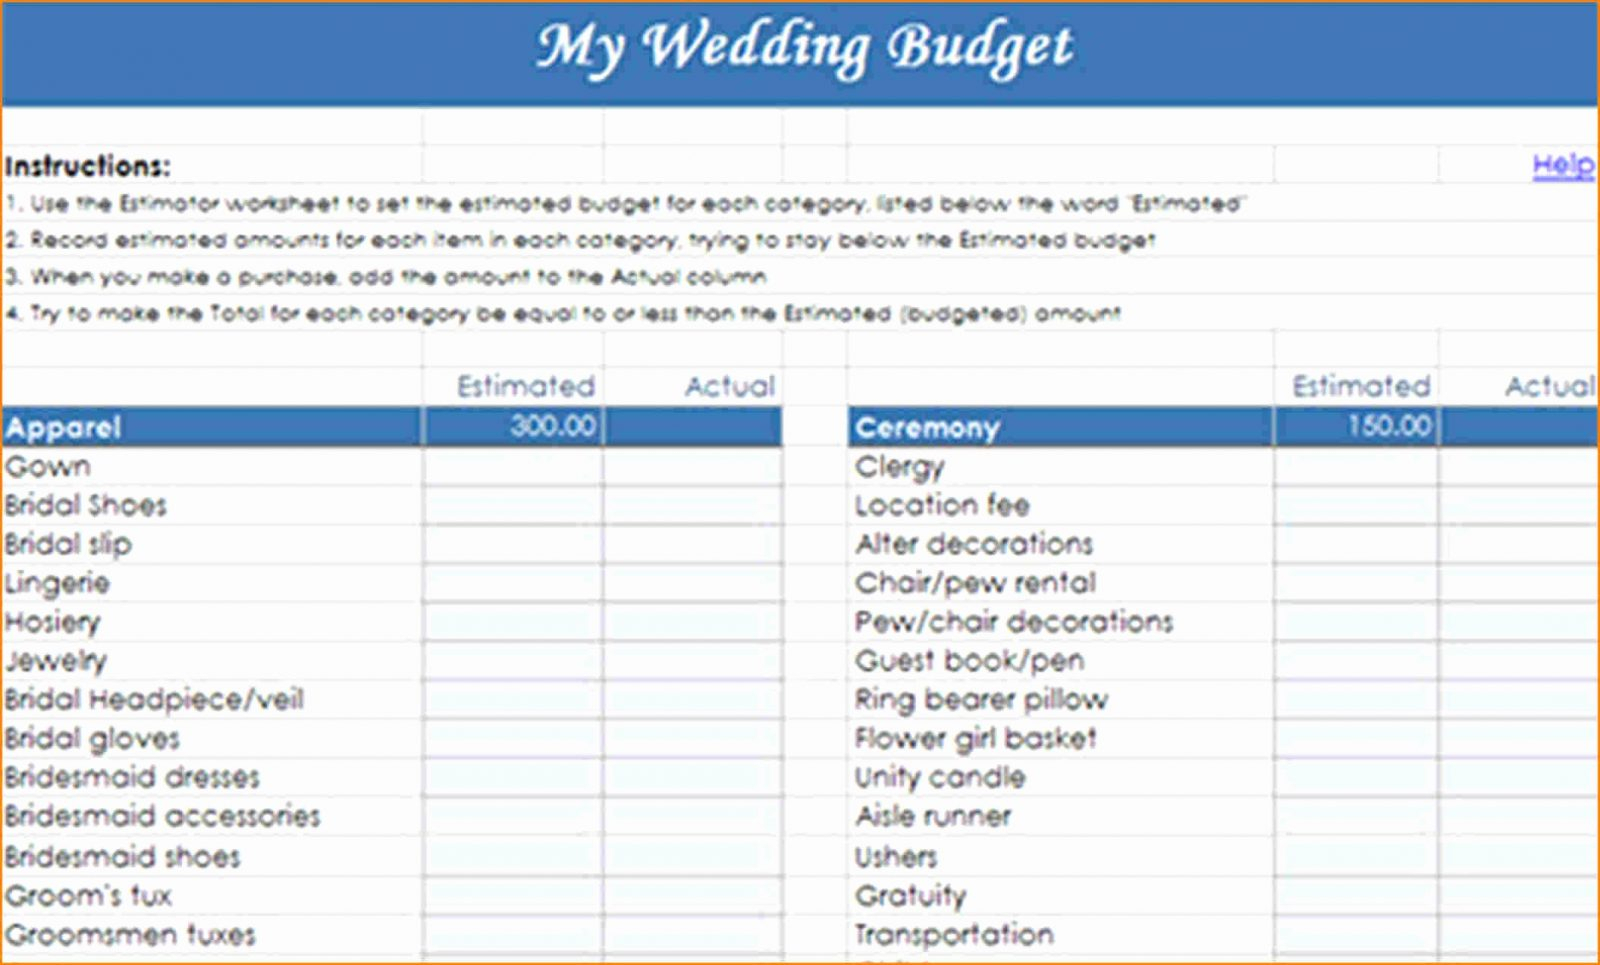 How To Create A Budget Spreadsheet In Excel Regarding Wedding Budget Worksheet Template Planner Example Of Spreadsheet